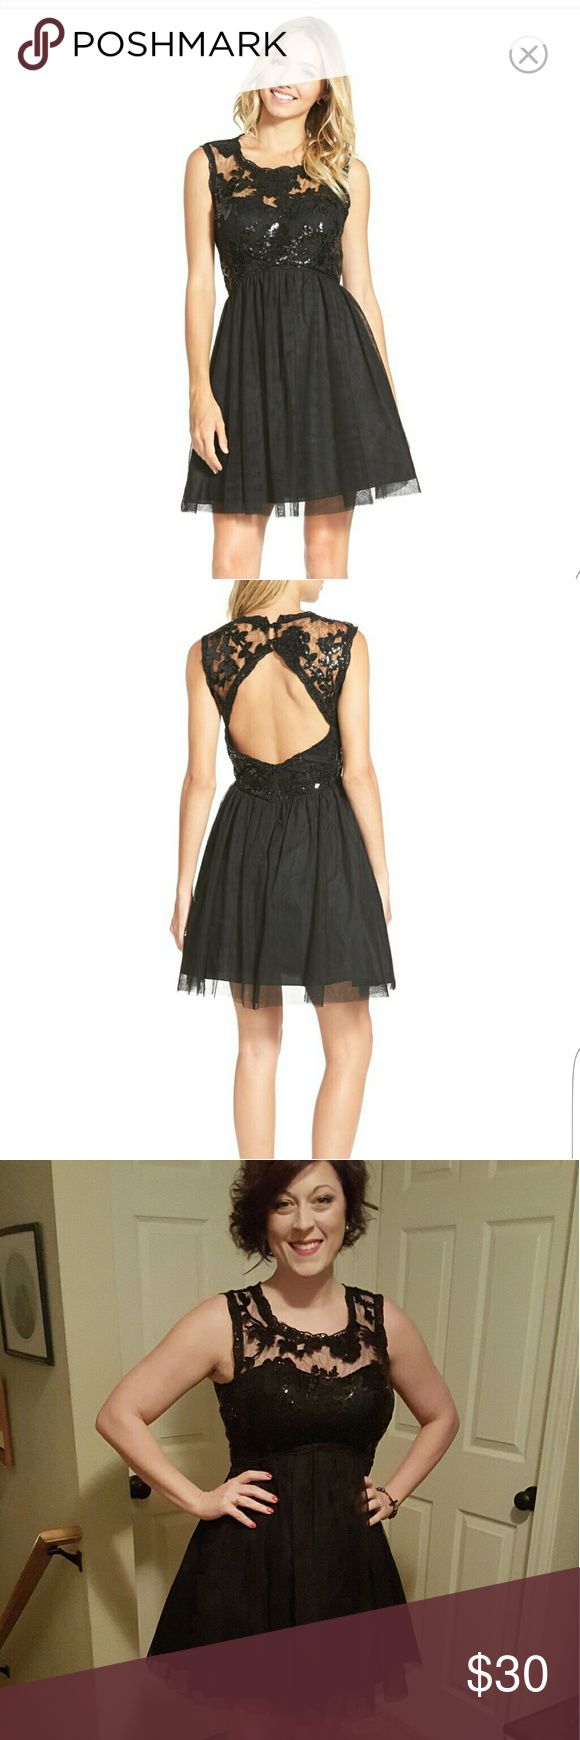 """Little Black Dress/Prom Style Dress Sequined lace with a back cutout makes this tulle-skirted party dress next-level pretty. 34"""" length. Back zip and button-and-loop closure. Scooped neck. 100% polyester. Hand wash cold, dry flat. By Sequin Hearts; imported. Worn Once to a holiday party, excellent condition!  Tag says size 9, I am 5'4, 135 lbs, 36D ish, 30 inch waist. It fits like a 6 or 8 like most of my other dresses. Sequin Hearts Dresses"""